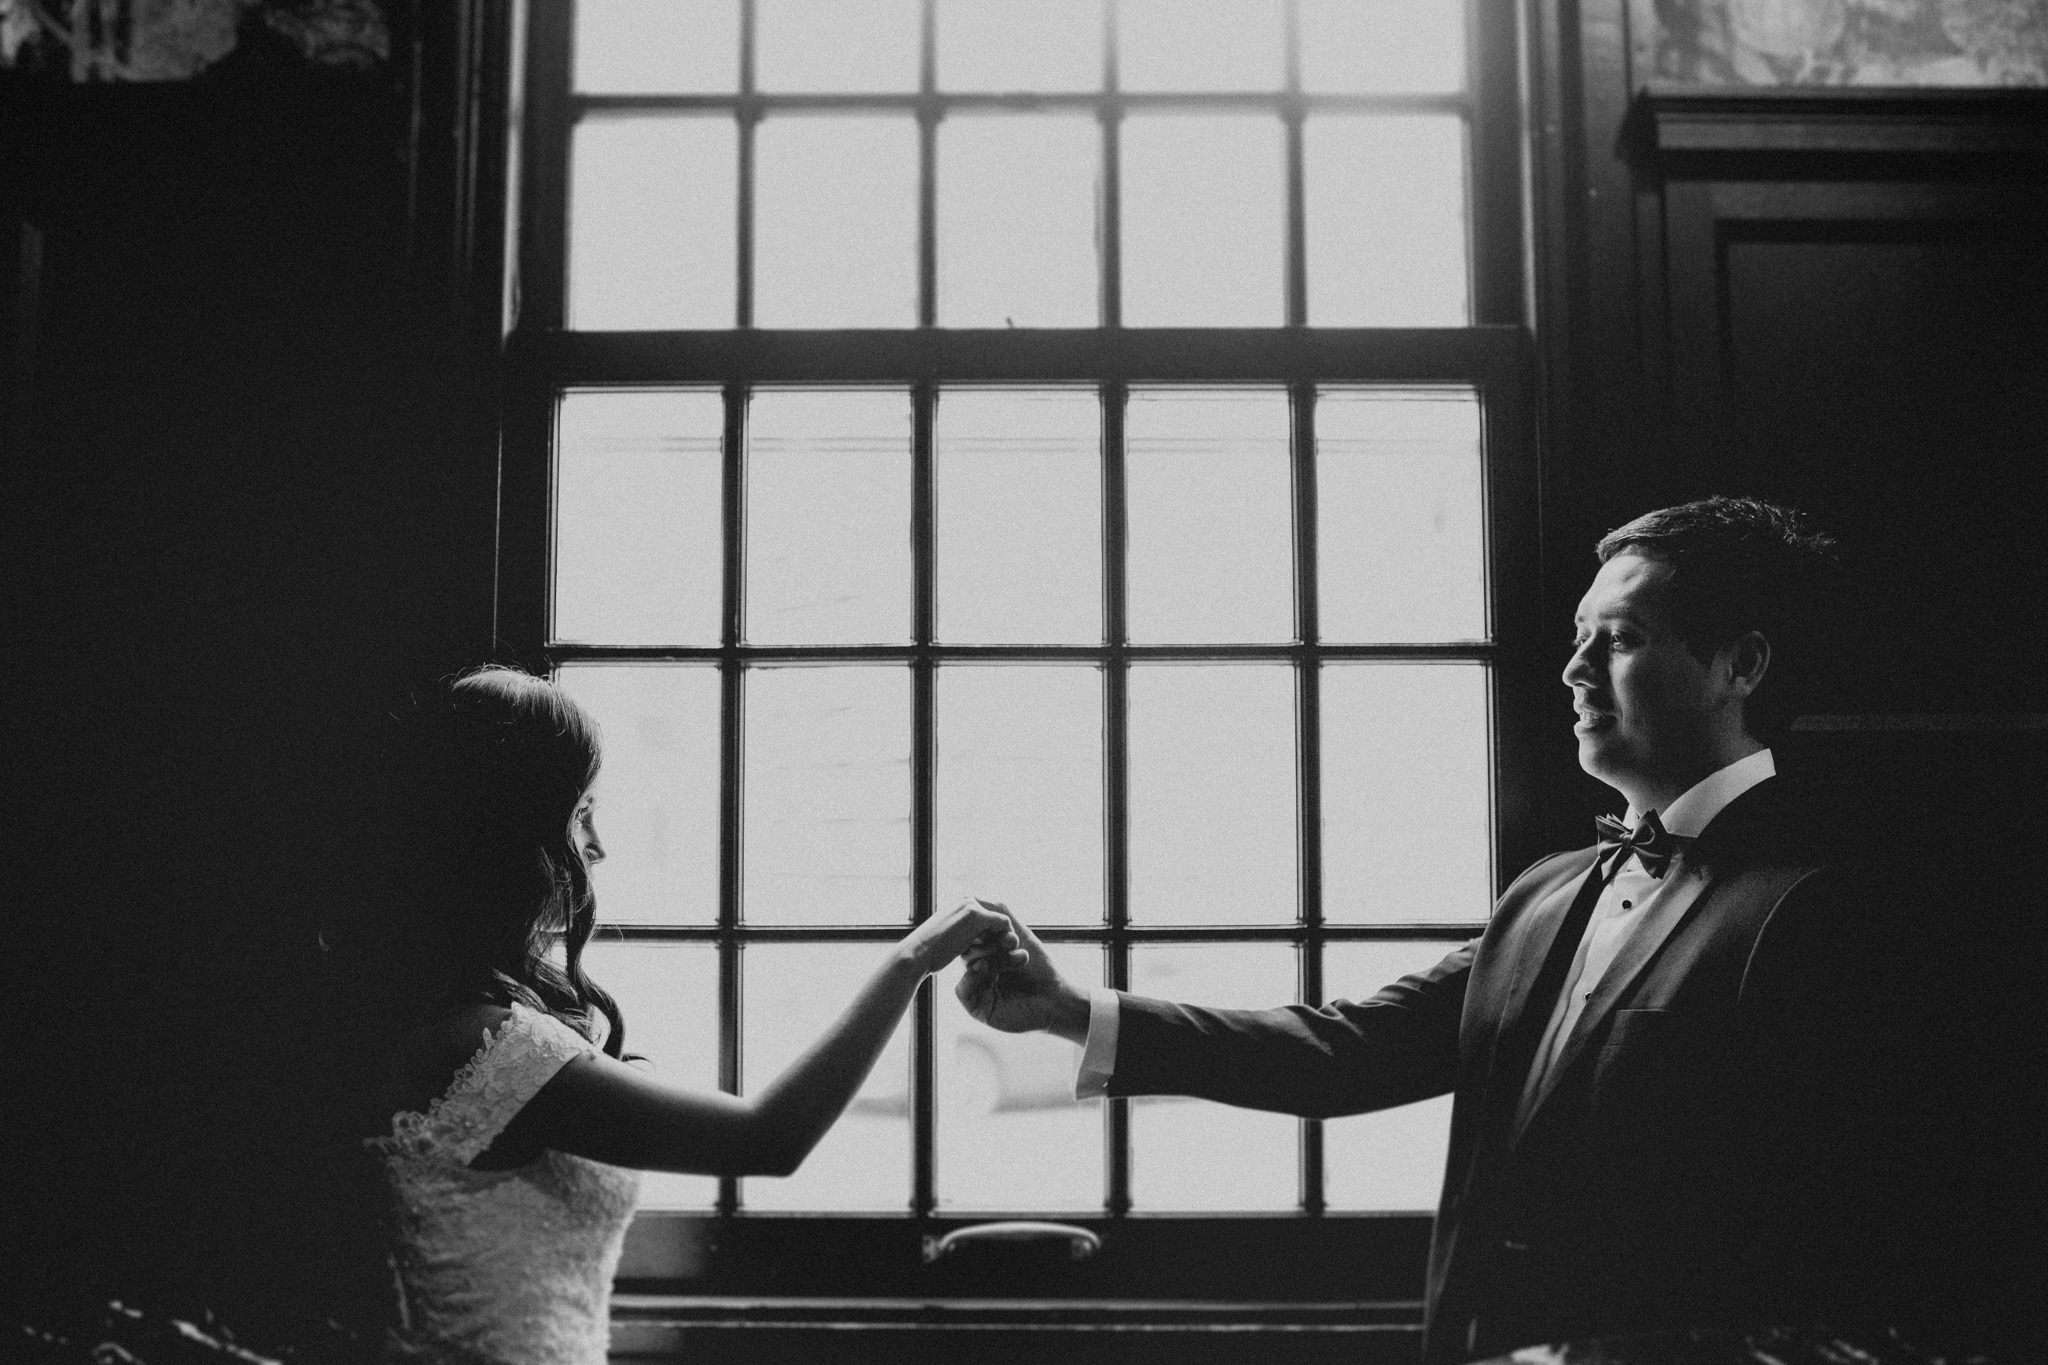 A Filipino couple in their wedding outfits hold hands in front of a large window